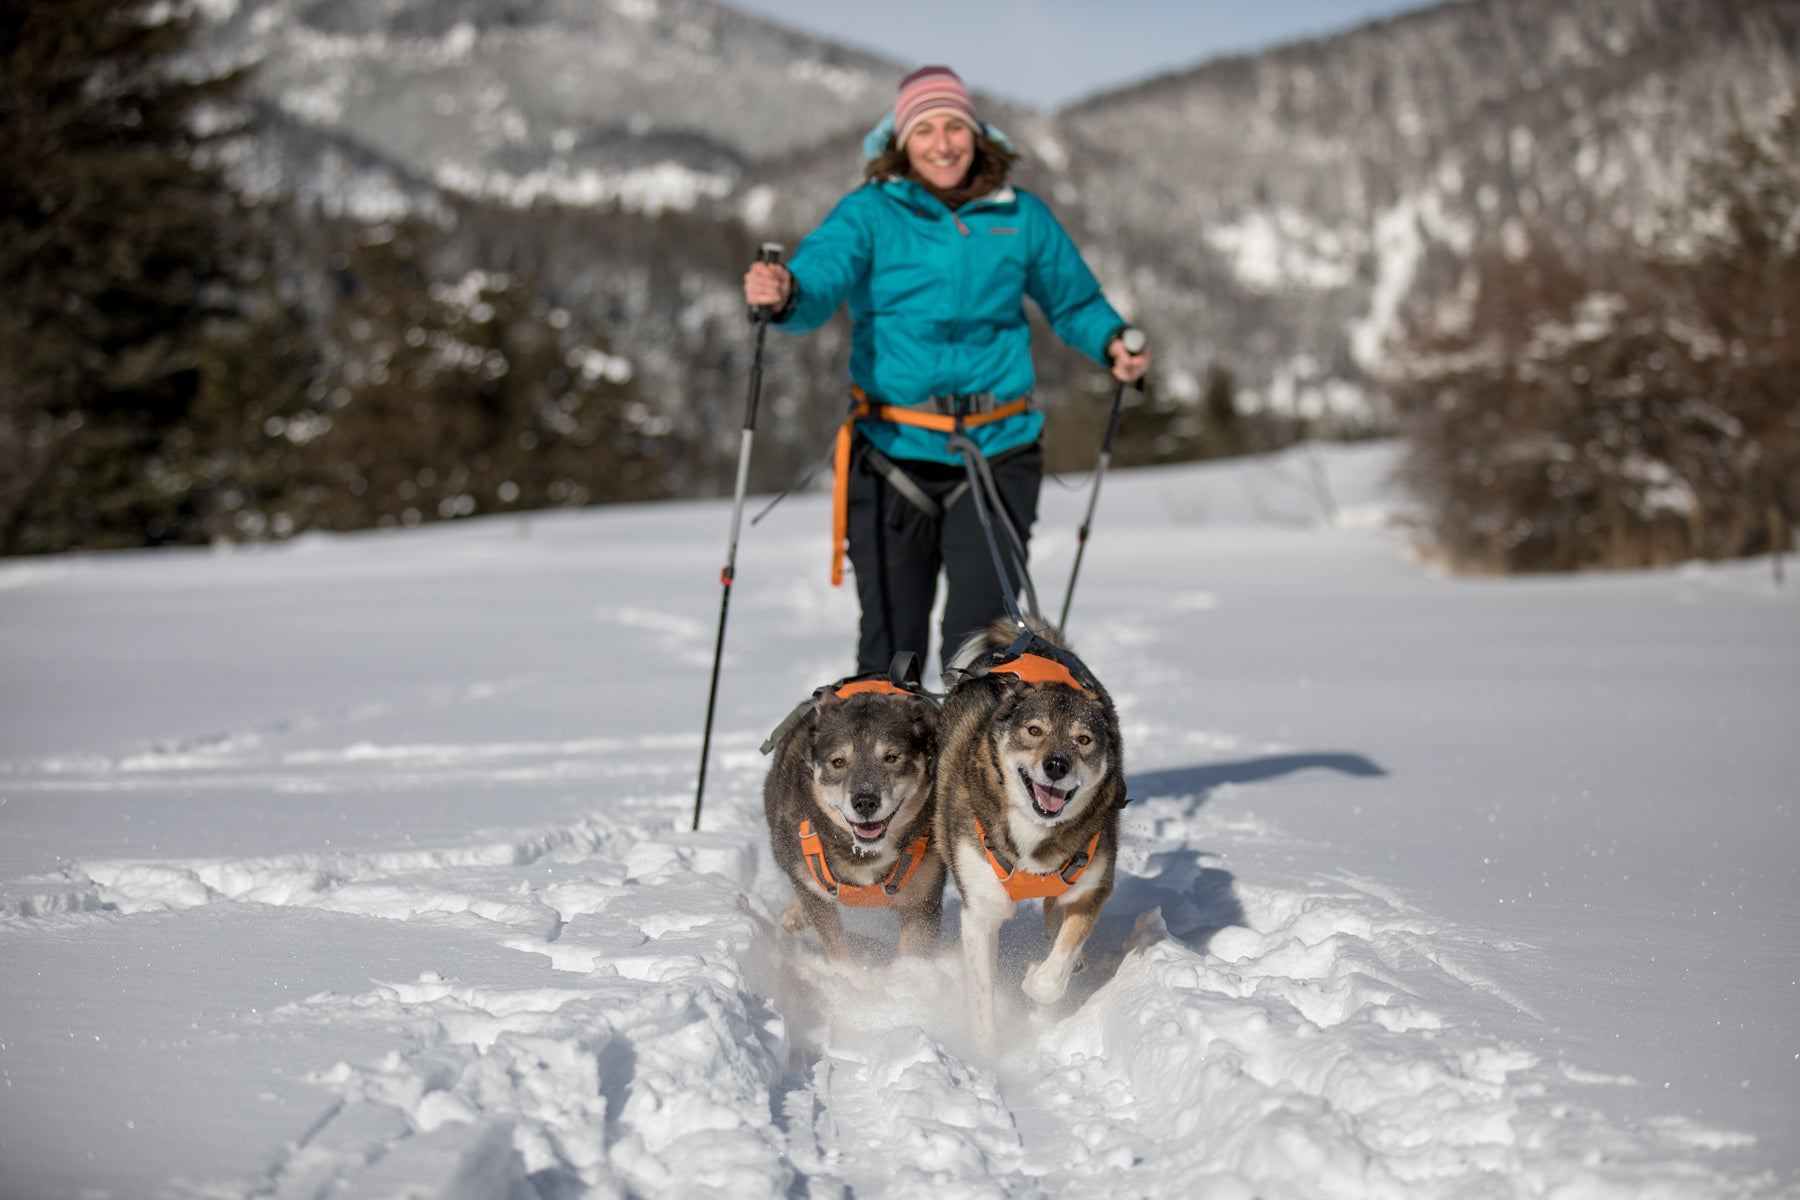 Two happy dogs towing Darcie on the Omnijore system through the snowy trails.